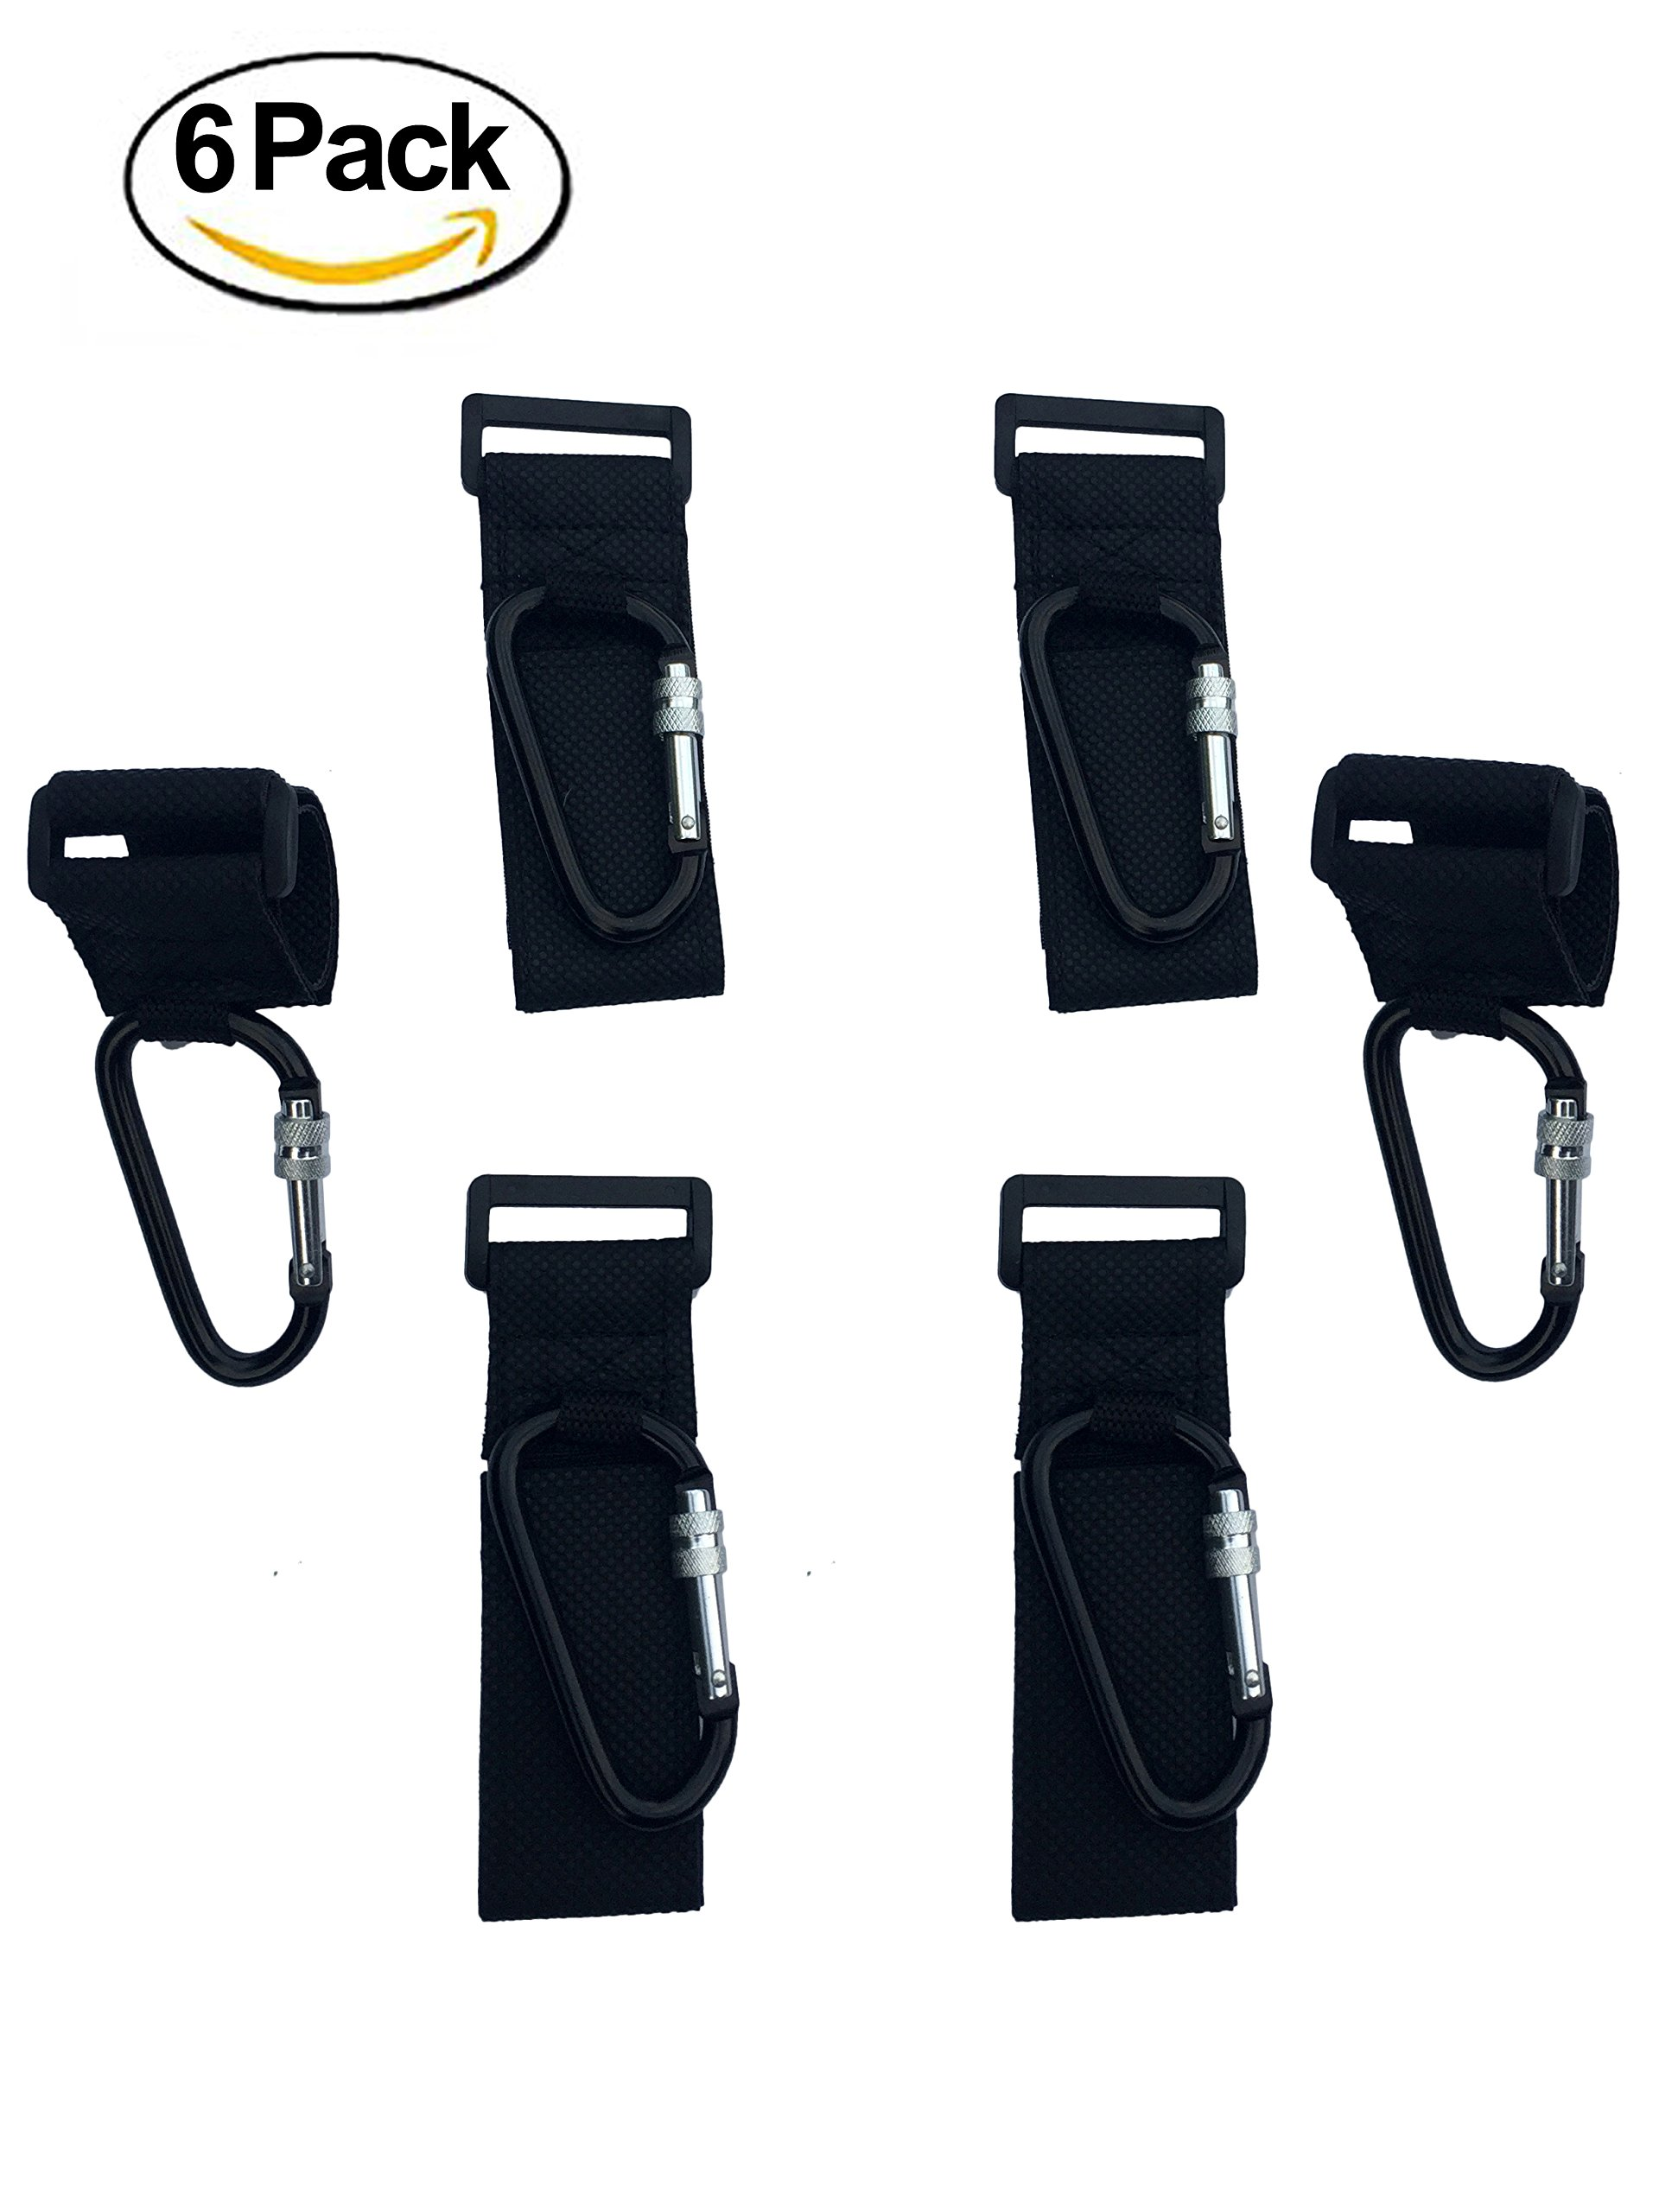 ALTINIFY Black Stroller Hook Clip with Lock – 6 Pack of Multi Purpose Hooks - Hanger for Baby Diaper Bags, Groceries, Clothing, Purse – Ideal for Mommy and Dad When Jogging, Walking or Shopping